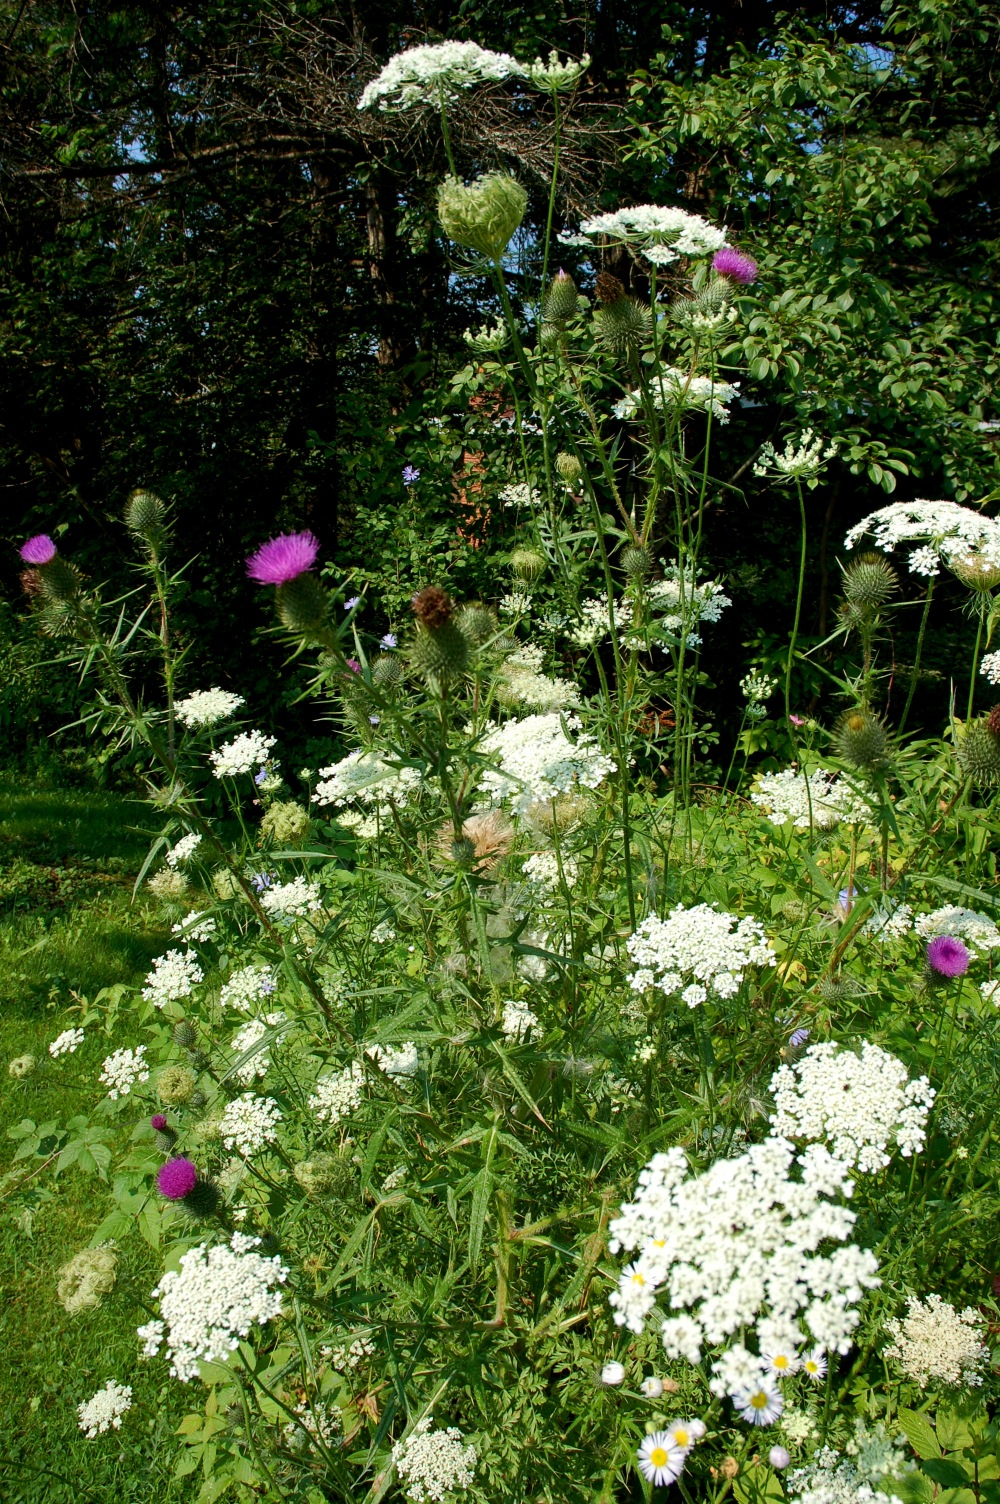 Queen Anne's lace & Scottish thistle across the street from my childhood home